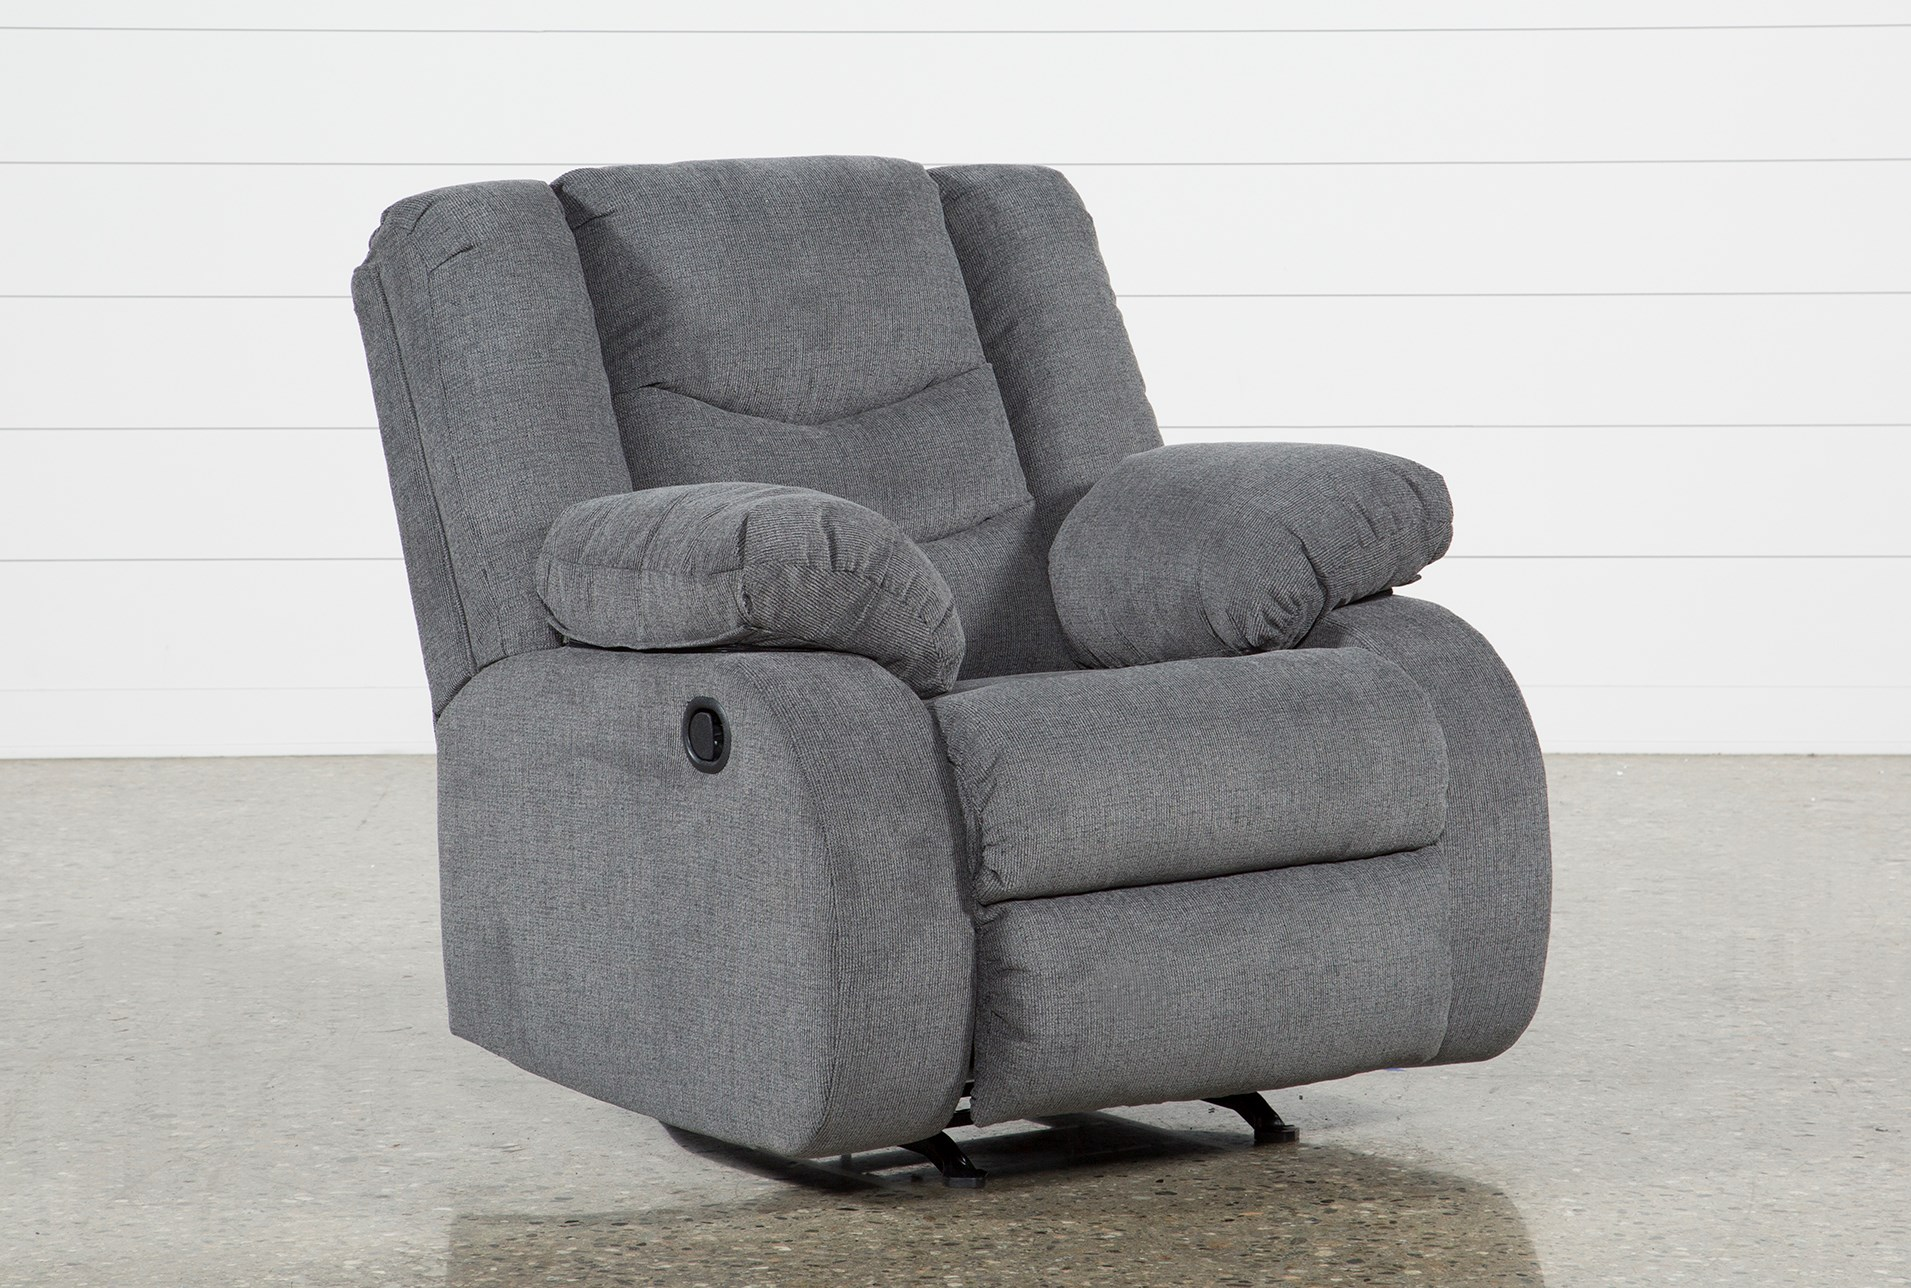 recliner beautiful comfortable exist comforter recommended do recliners chair they most neutral